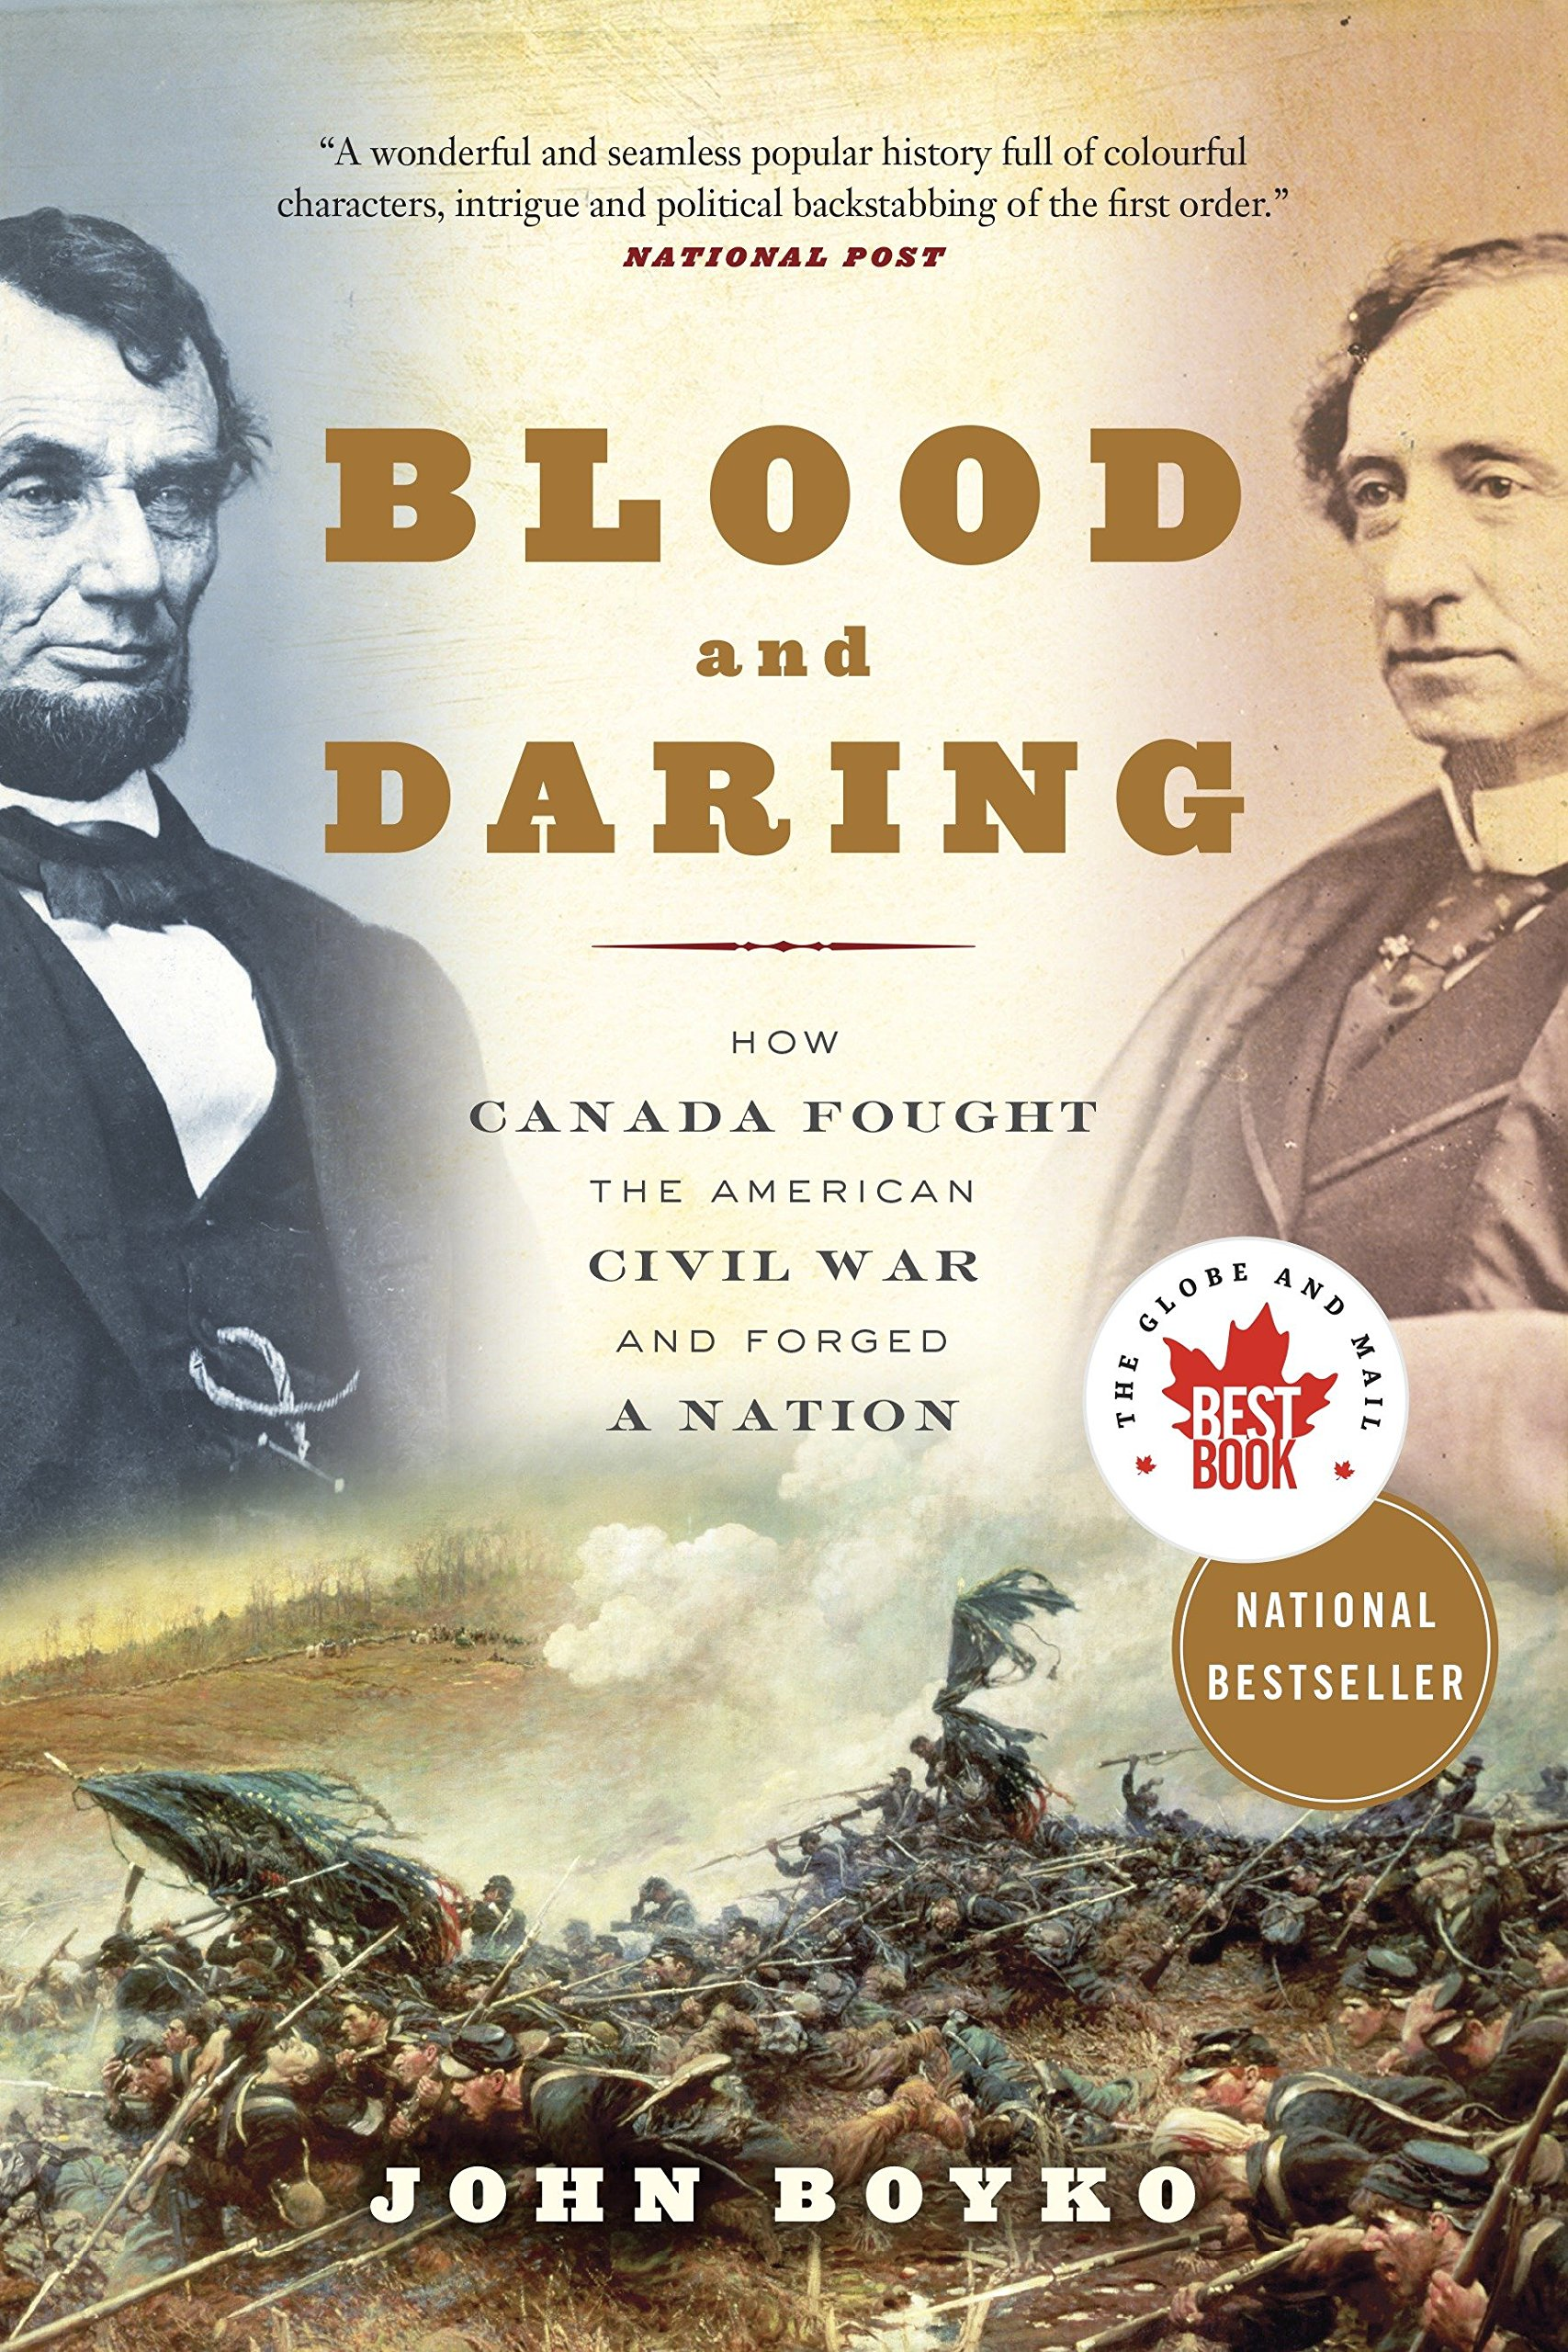 Blood and Daring How Canada Fought the American Civil War and Forged a Nation